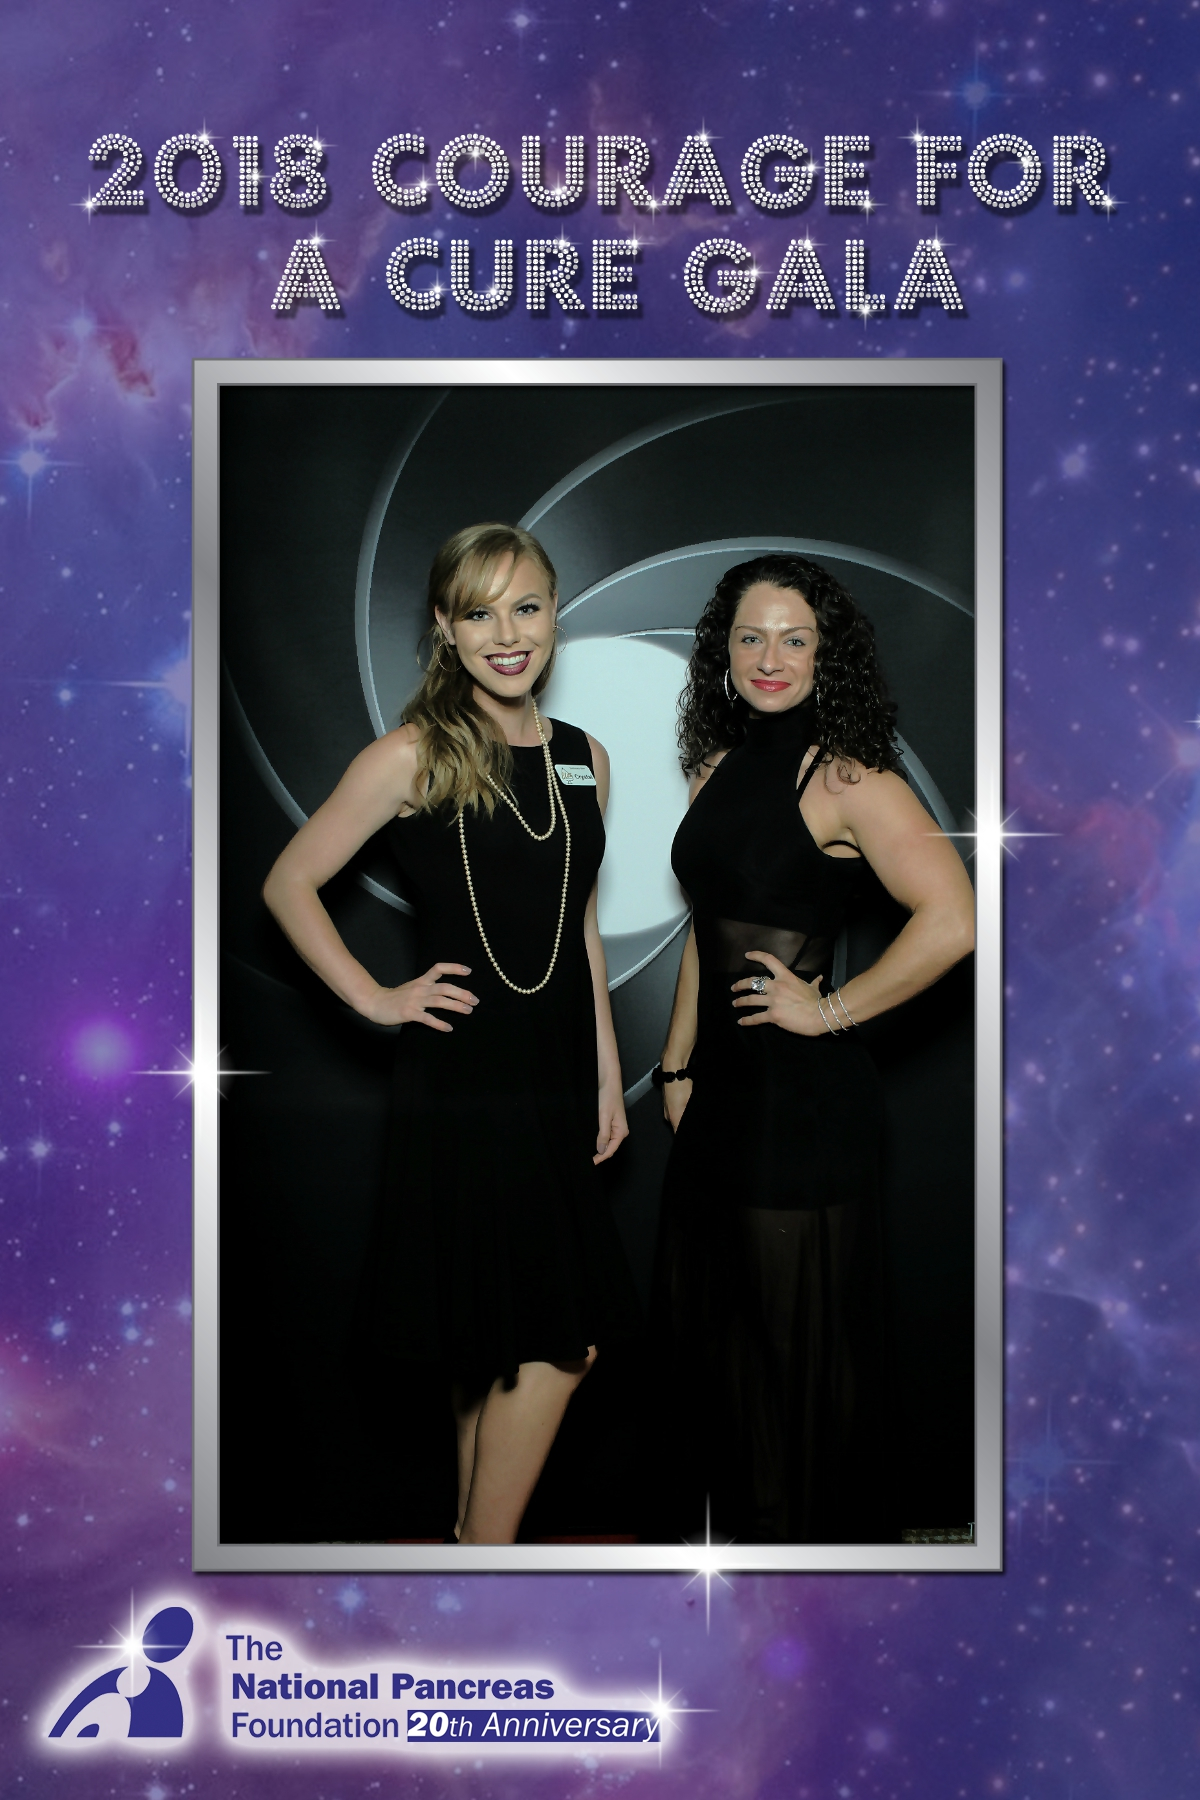 Crystal and Veronica at Black Tie Fundraiser in Pittsburgh